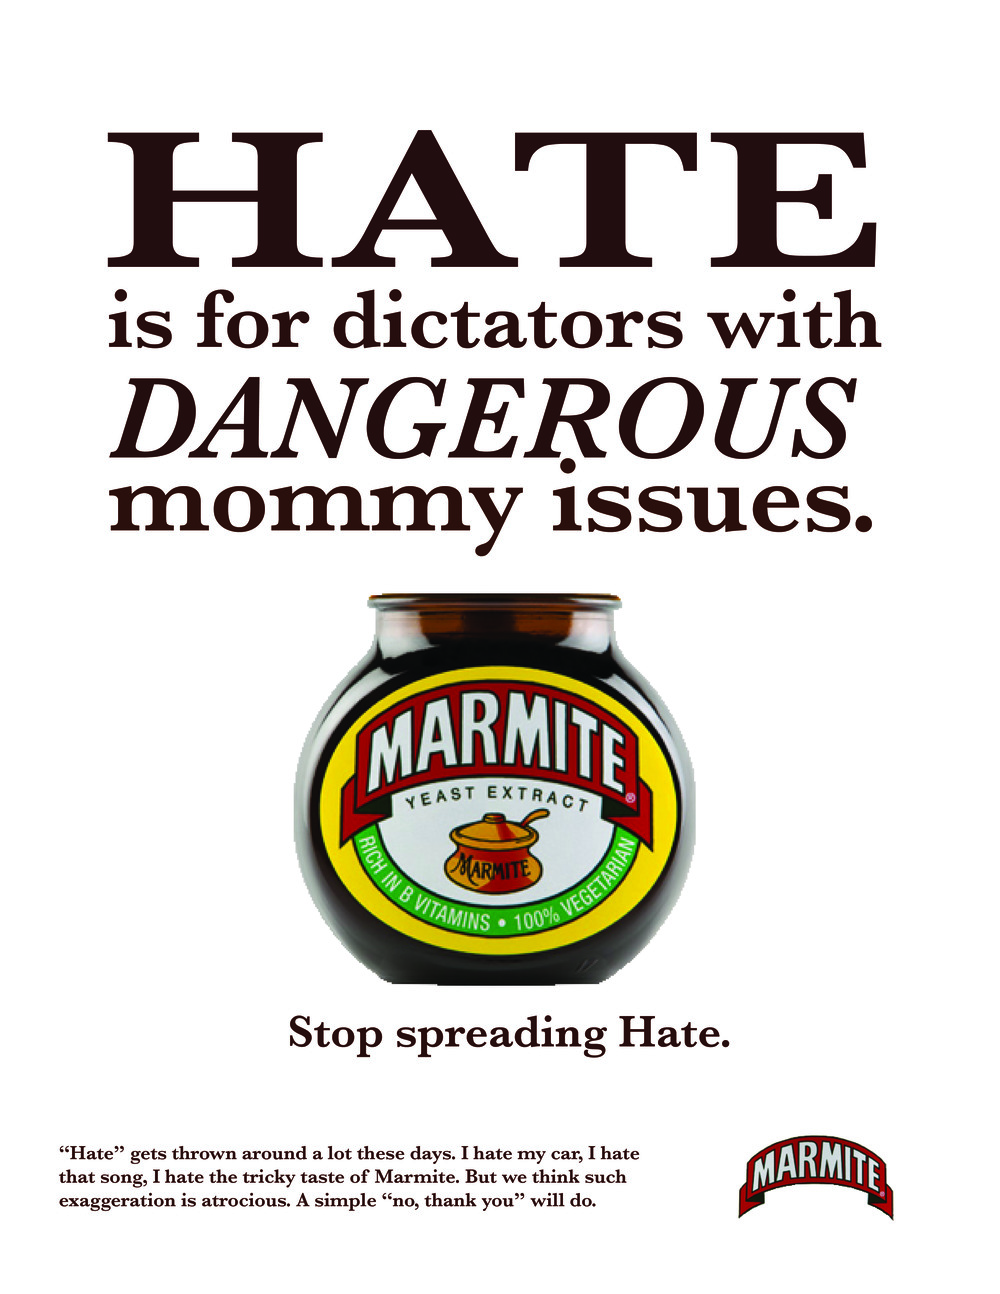 """Hate"" gets thrown around a lot these days. I hate my car, I hate that song, I hate the tricky taste of Marmite. But we think such exaggeration is atrocious. A simple ""no, thank you"" will do."